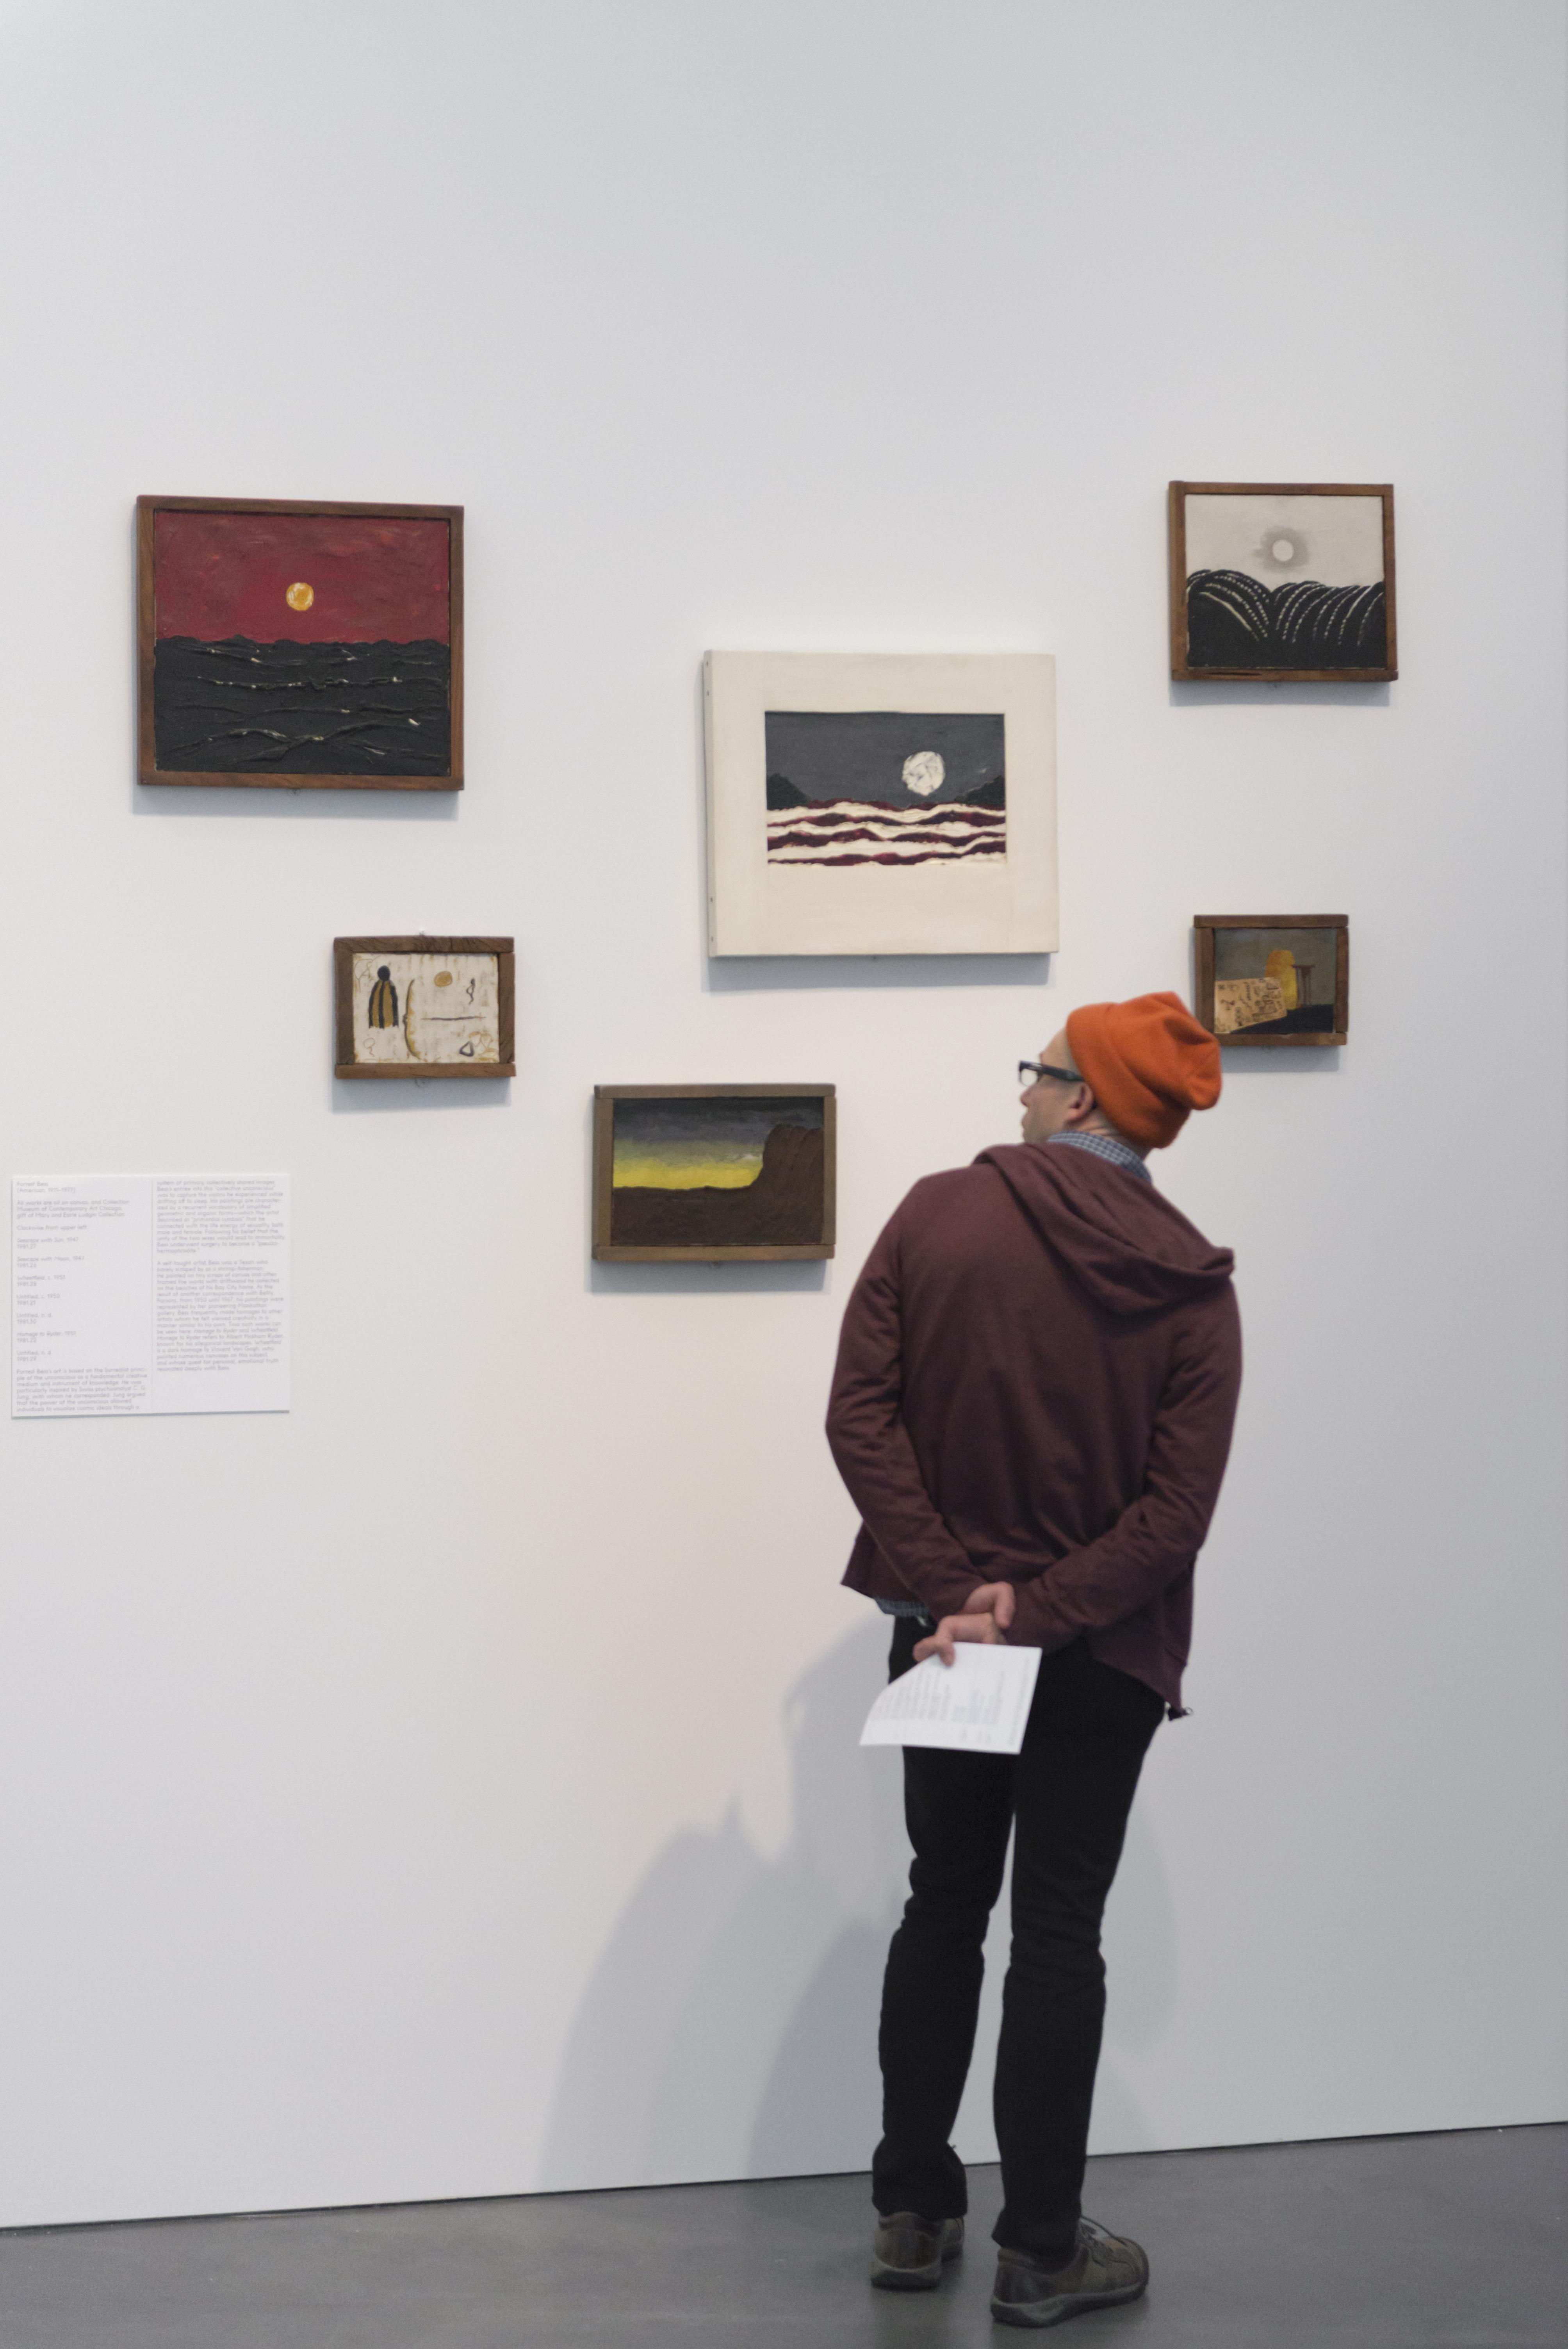 A person wearing a hoodie and beanie faces six small and medium sized paintings on a gallery wall.